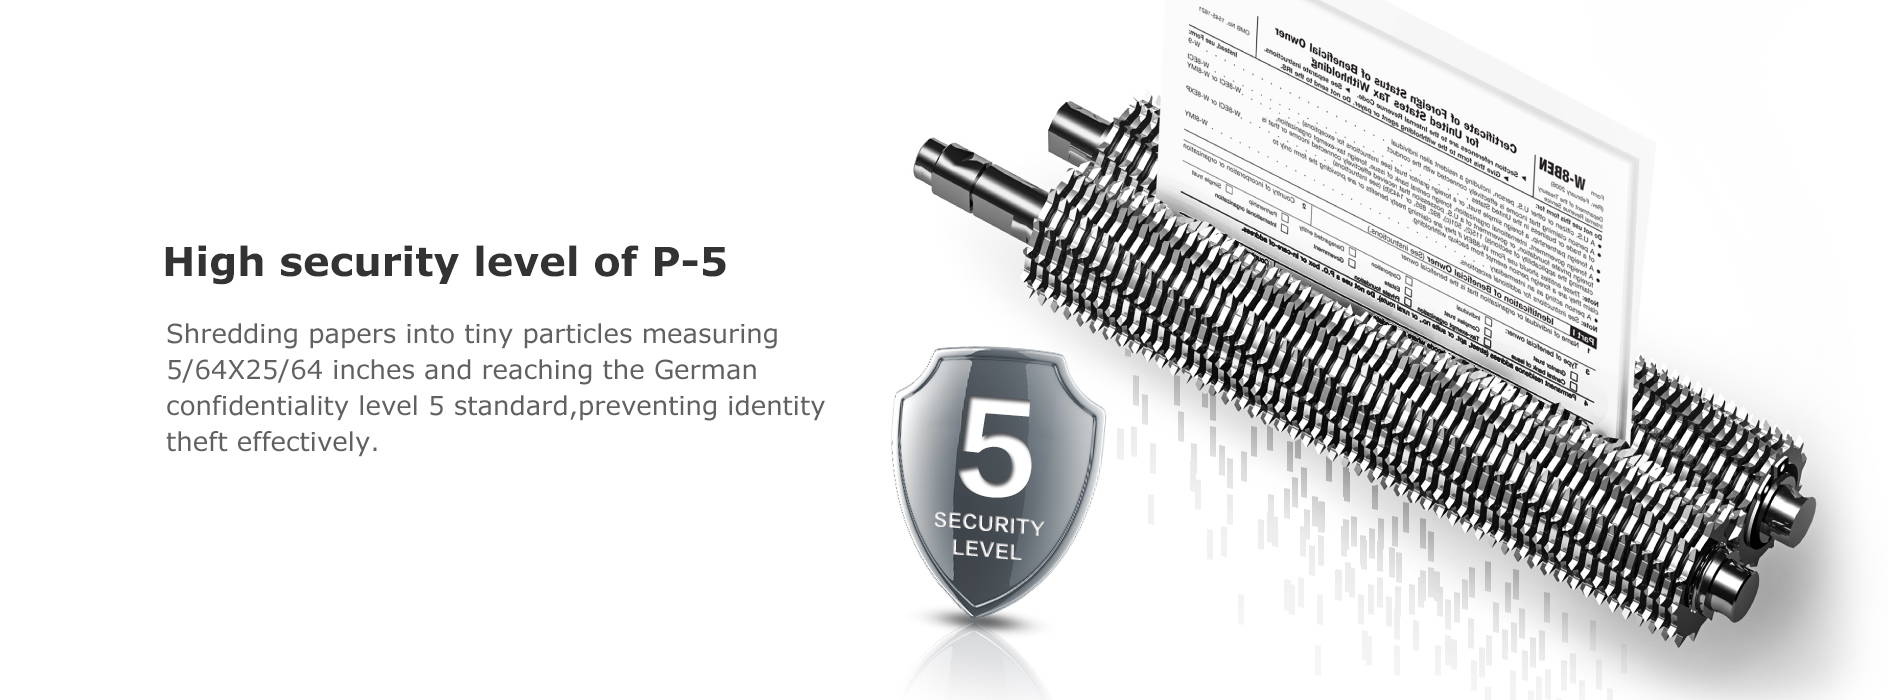 High security level of P-5 Shredding papers into tiny particles measuring 5/64X25/64 inches and reaching the German confidentiality level 5 standard,preventing identity theft effectively.